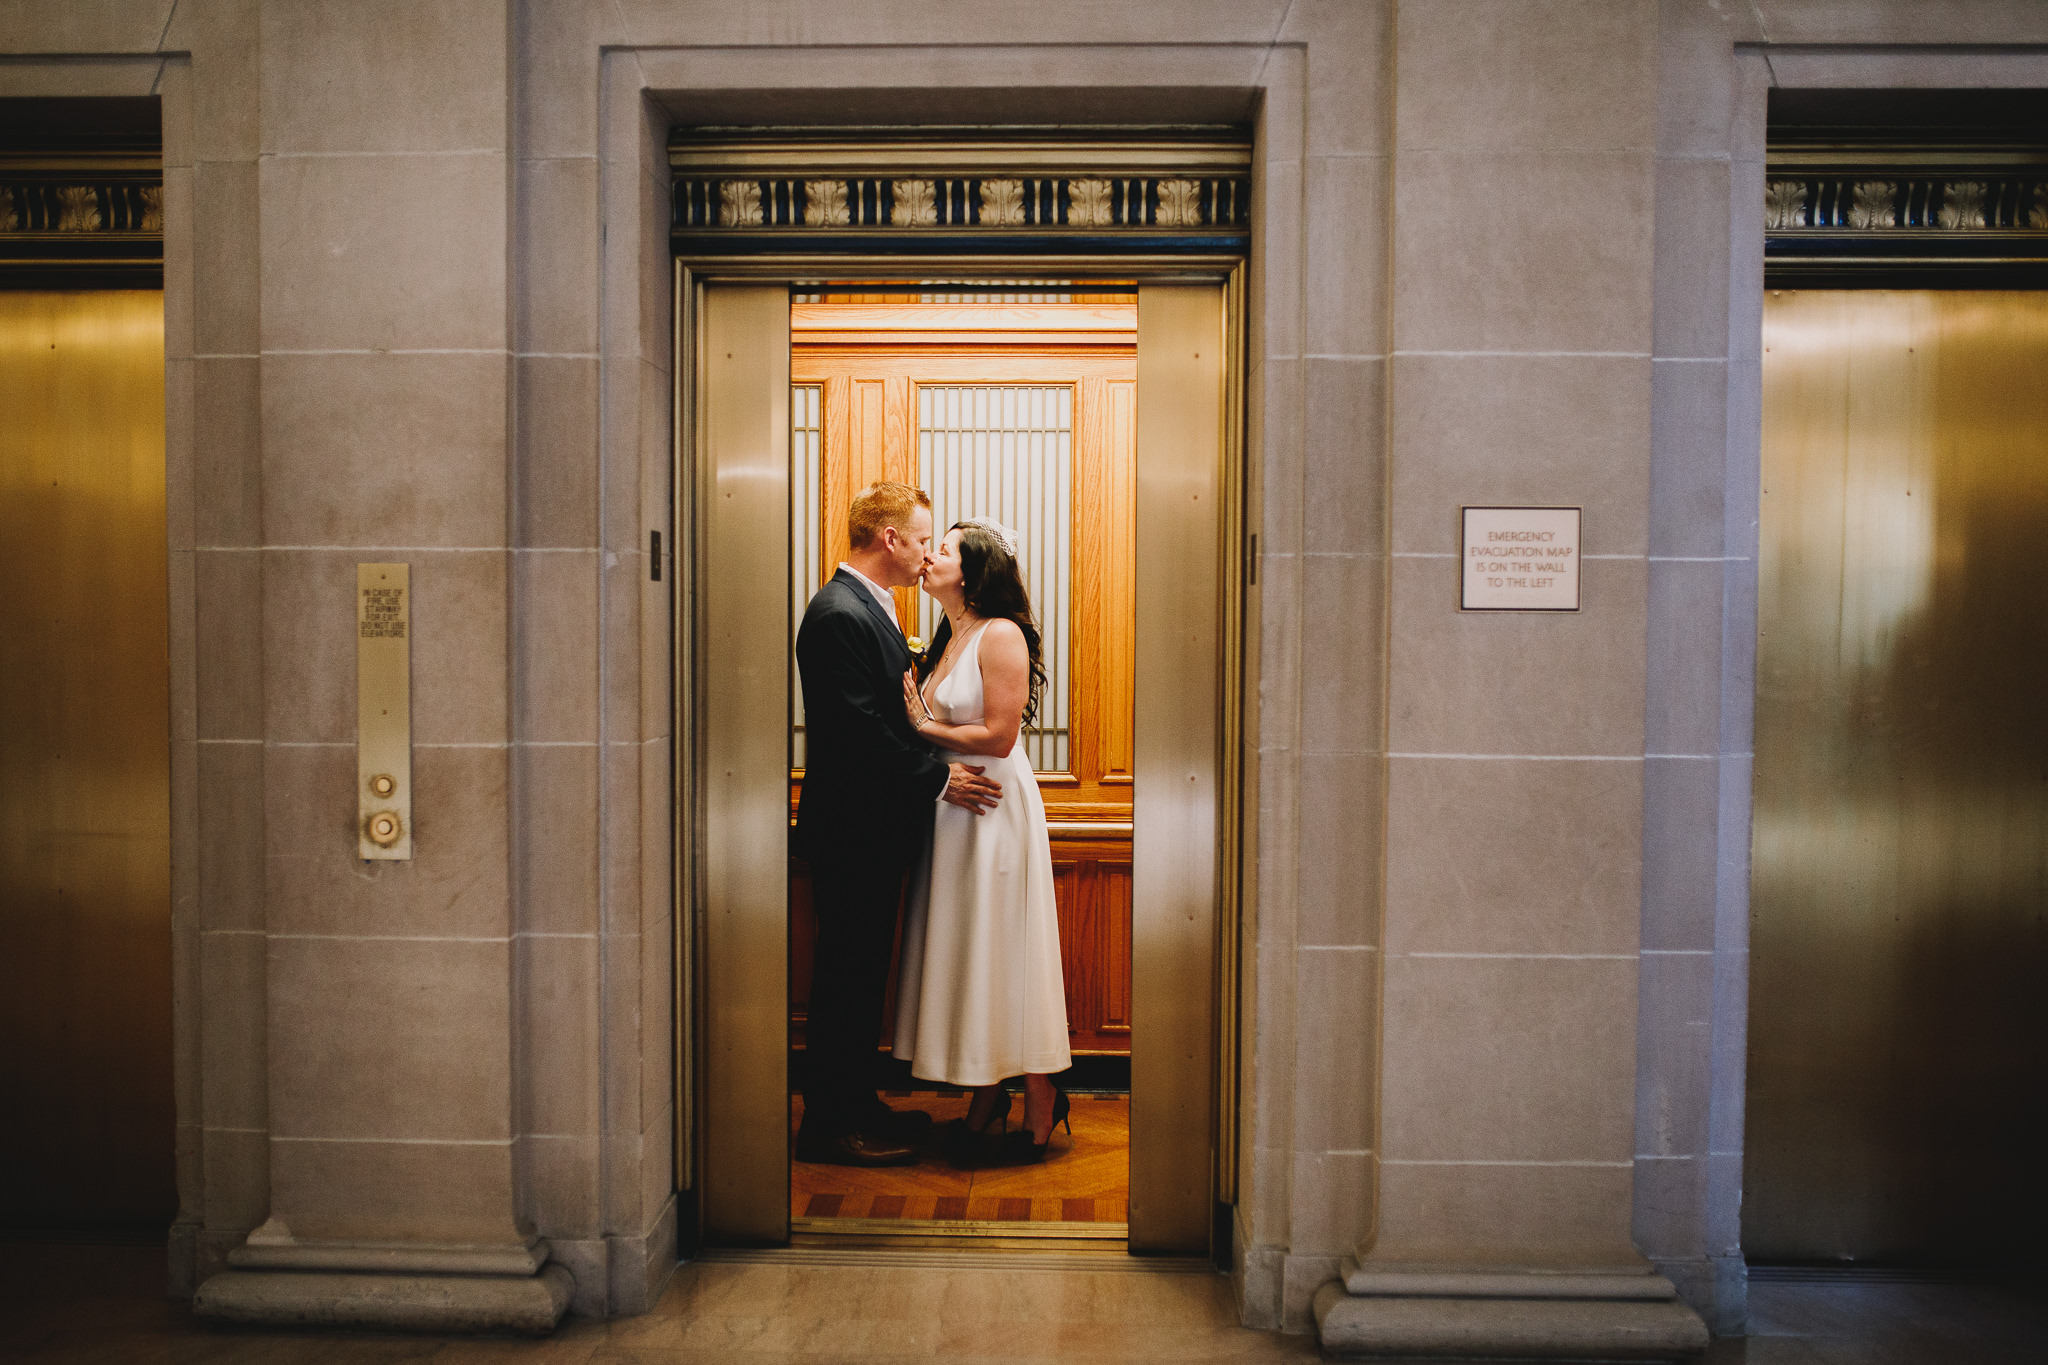 Archer Inspired Photography SF City Hall Elopement Wedding Lifestyle Documentary Affordable Photographer-181.jpg